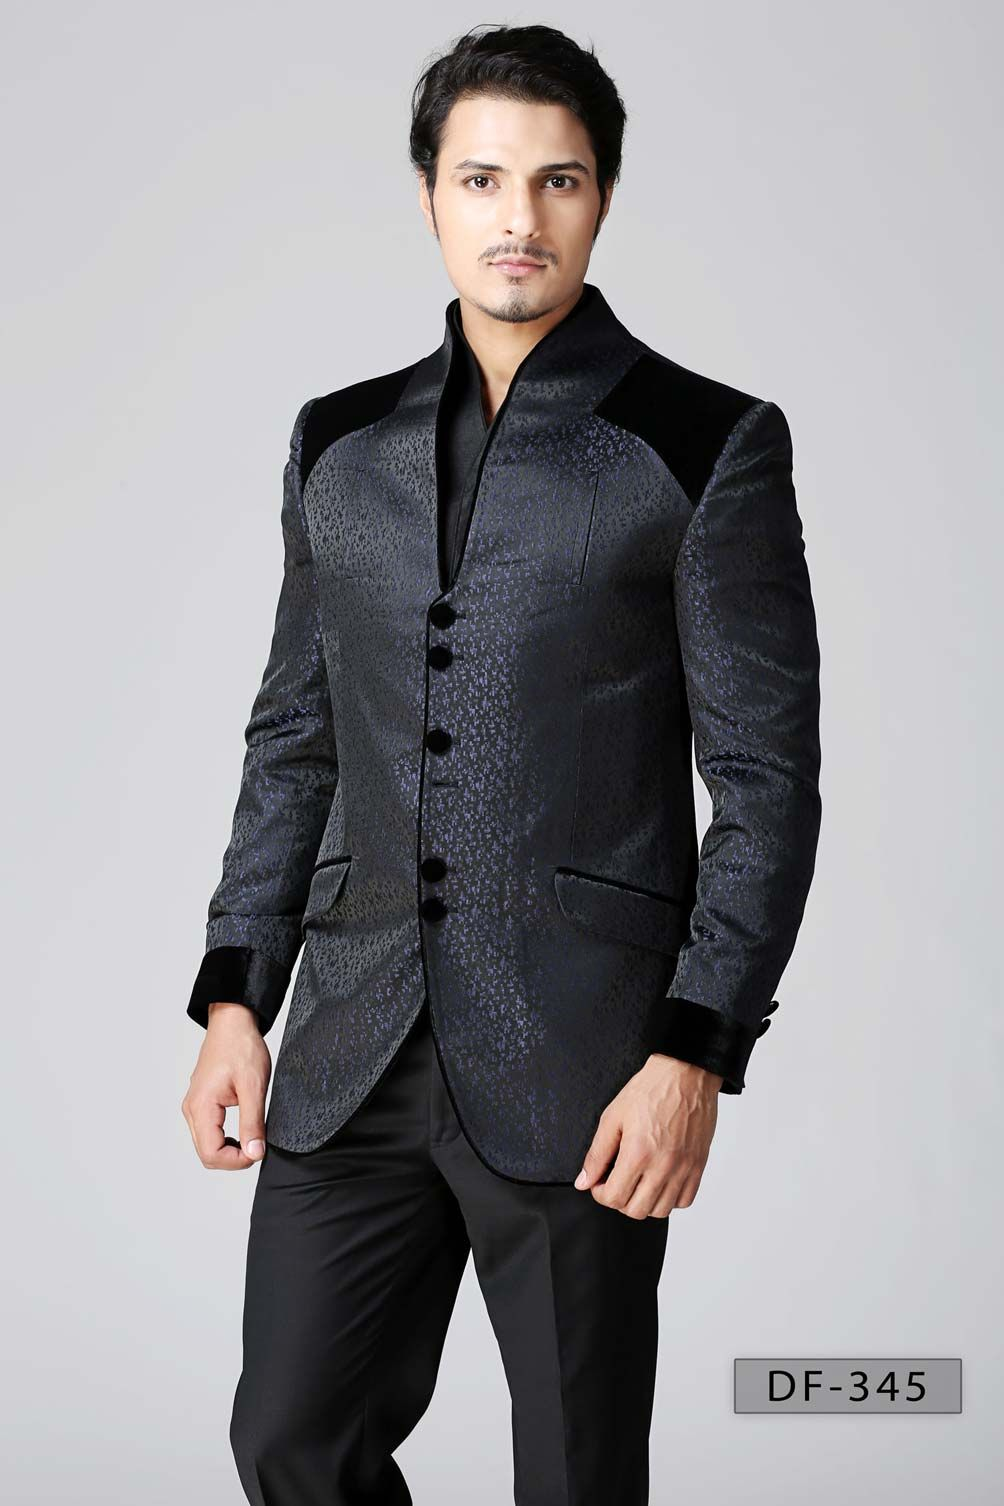 men's+couture+clothing+images | Designer Suits For ...